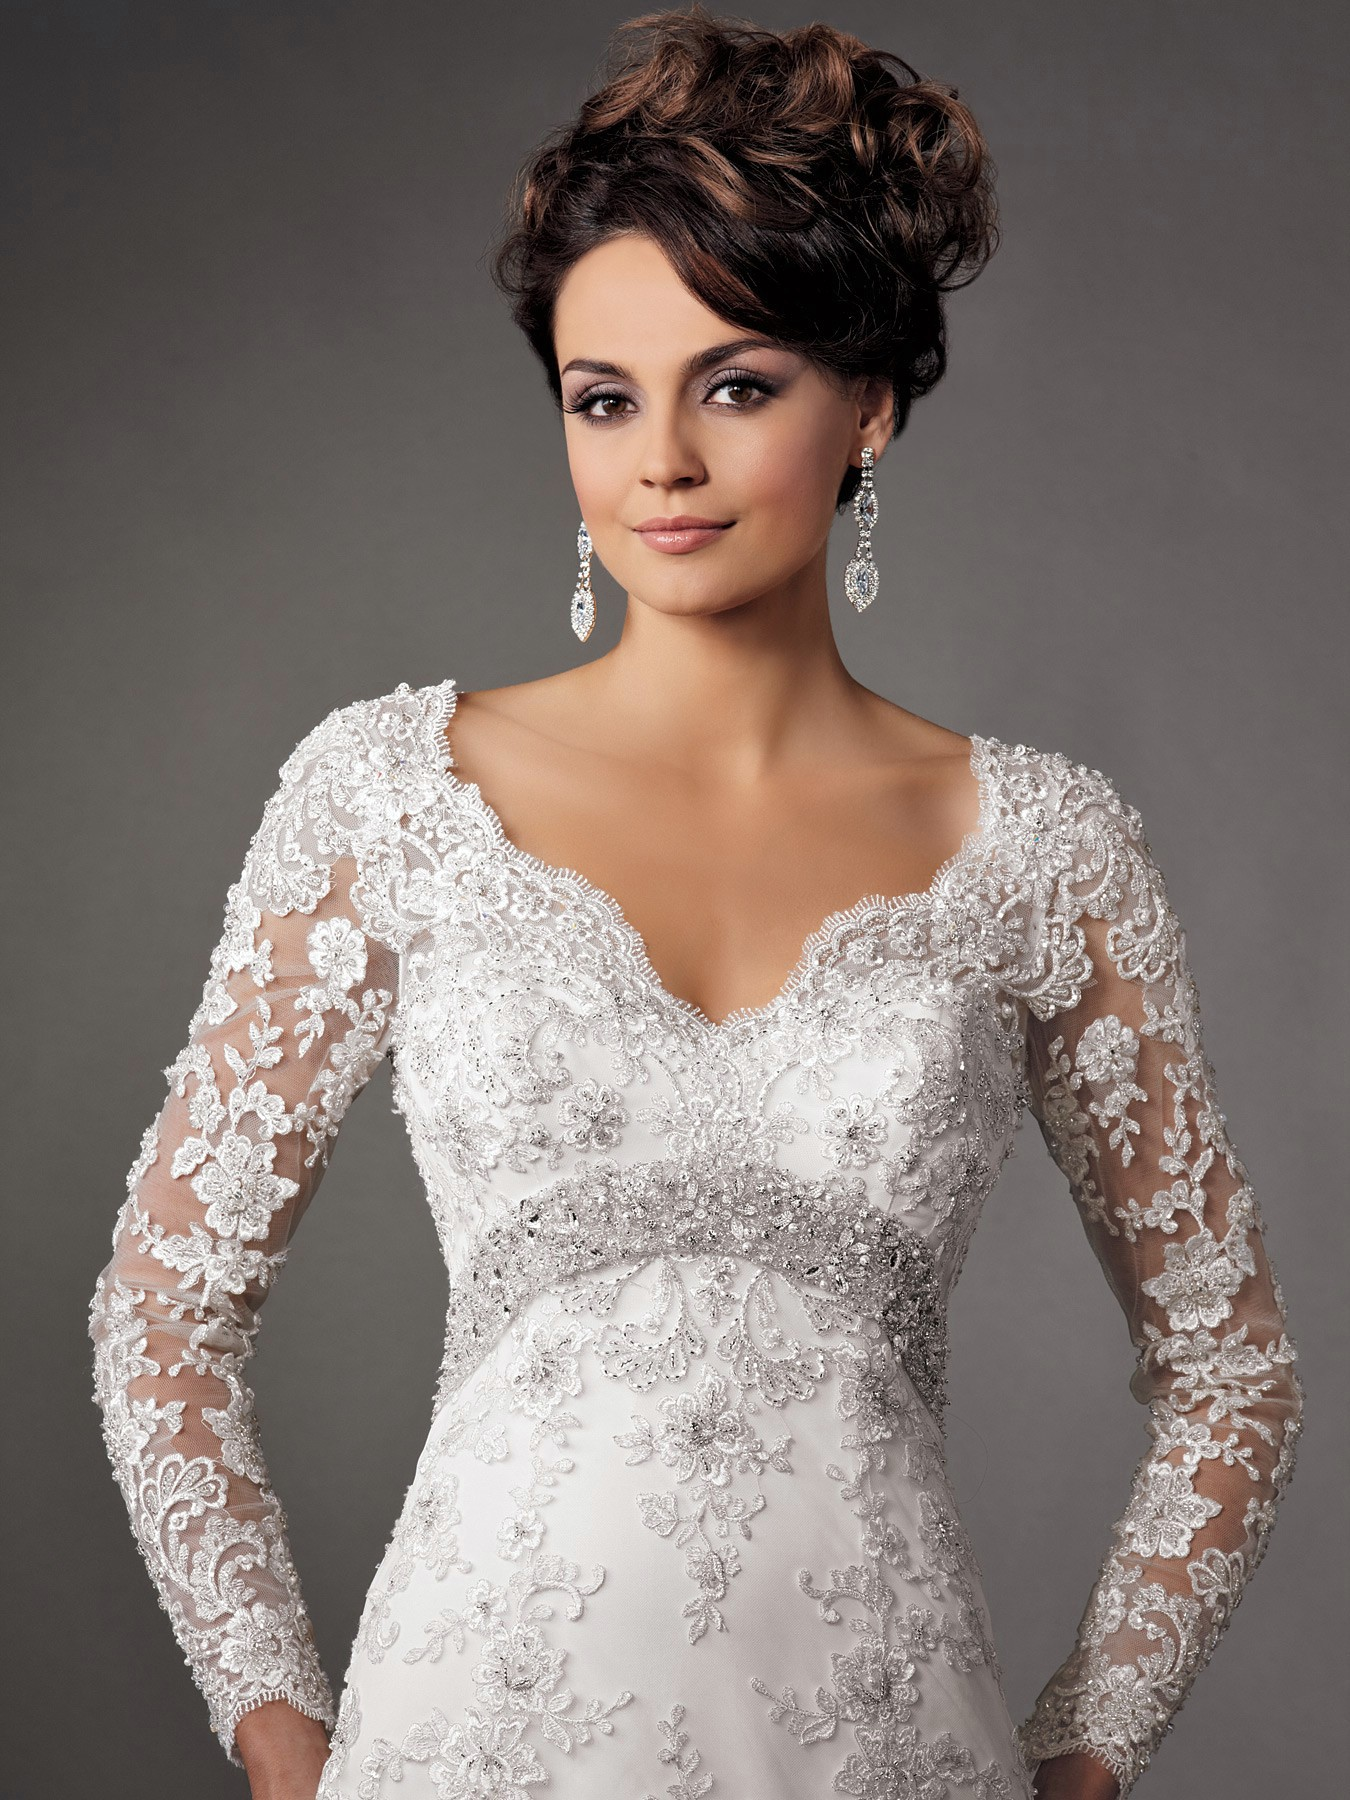 wedding dress with long lace sleeves and v-neck